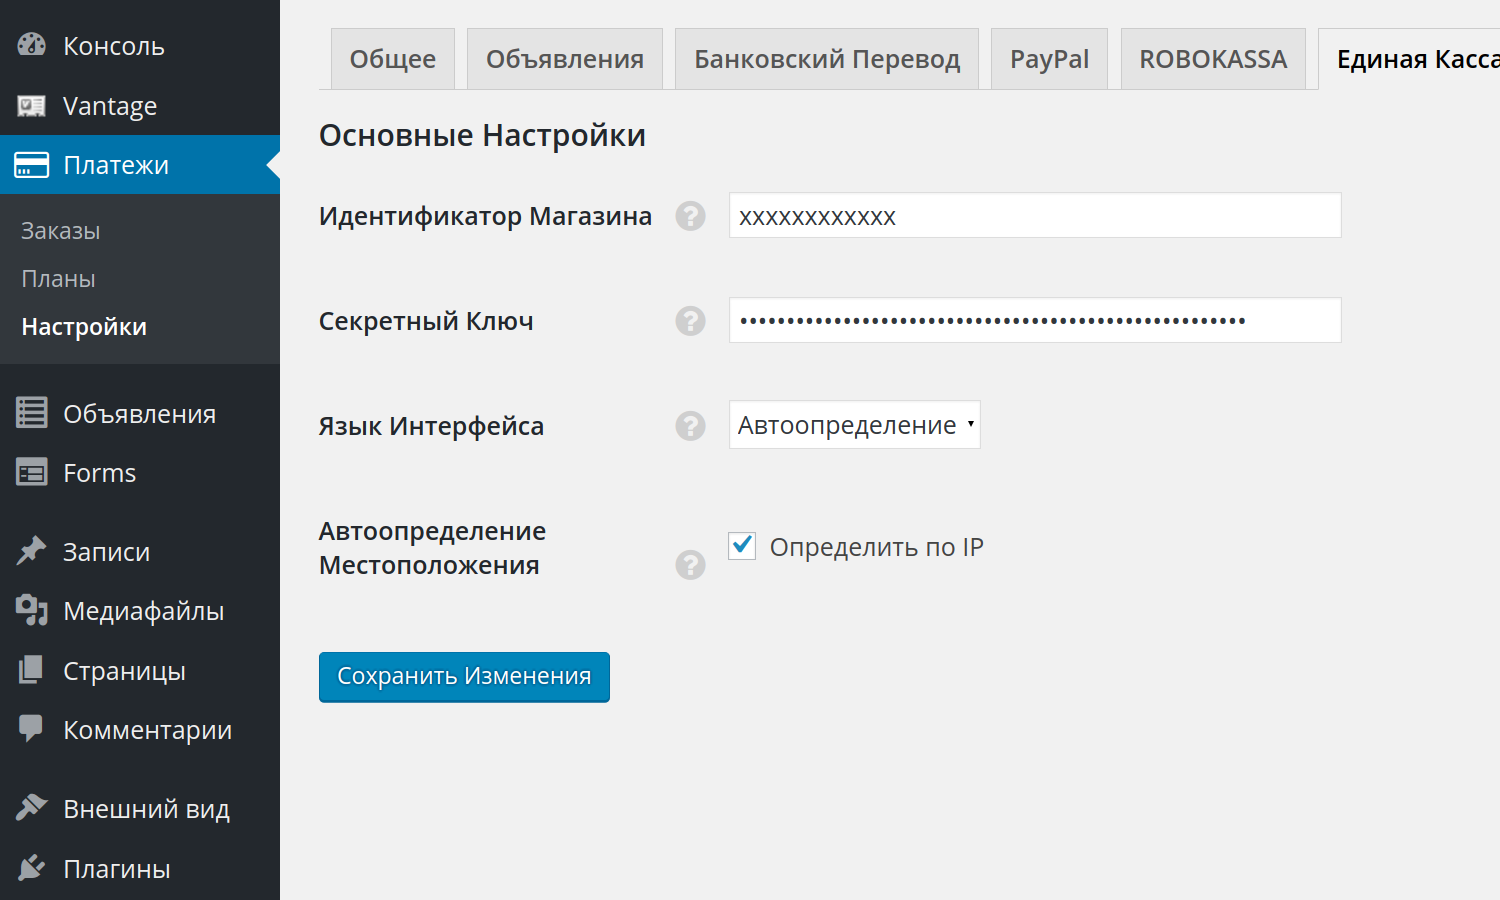 Wallet One Checkout Gateway settings (russian)